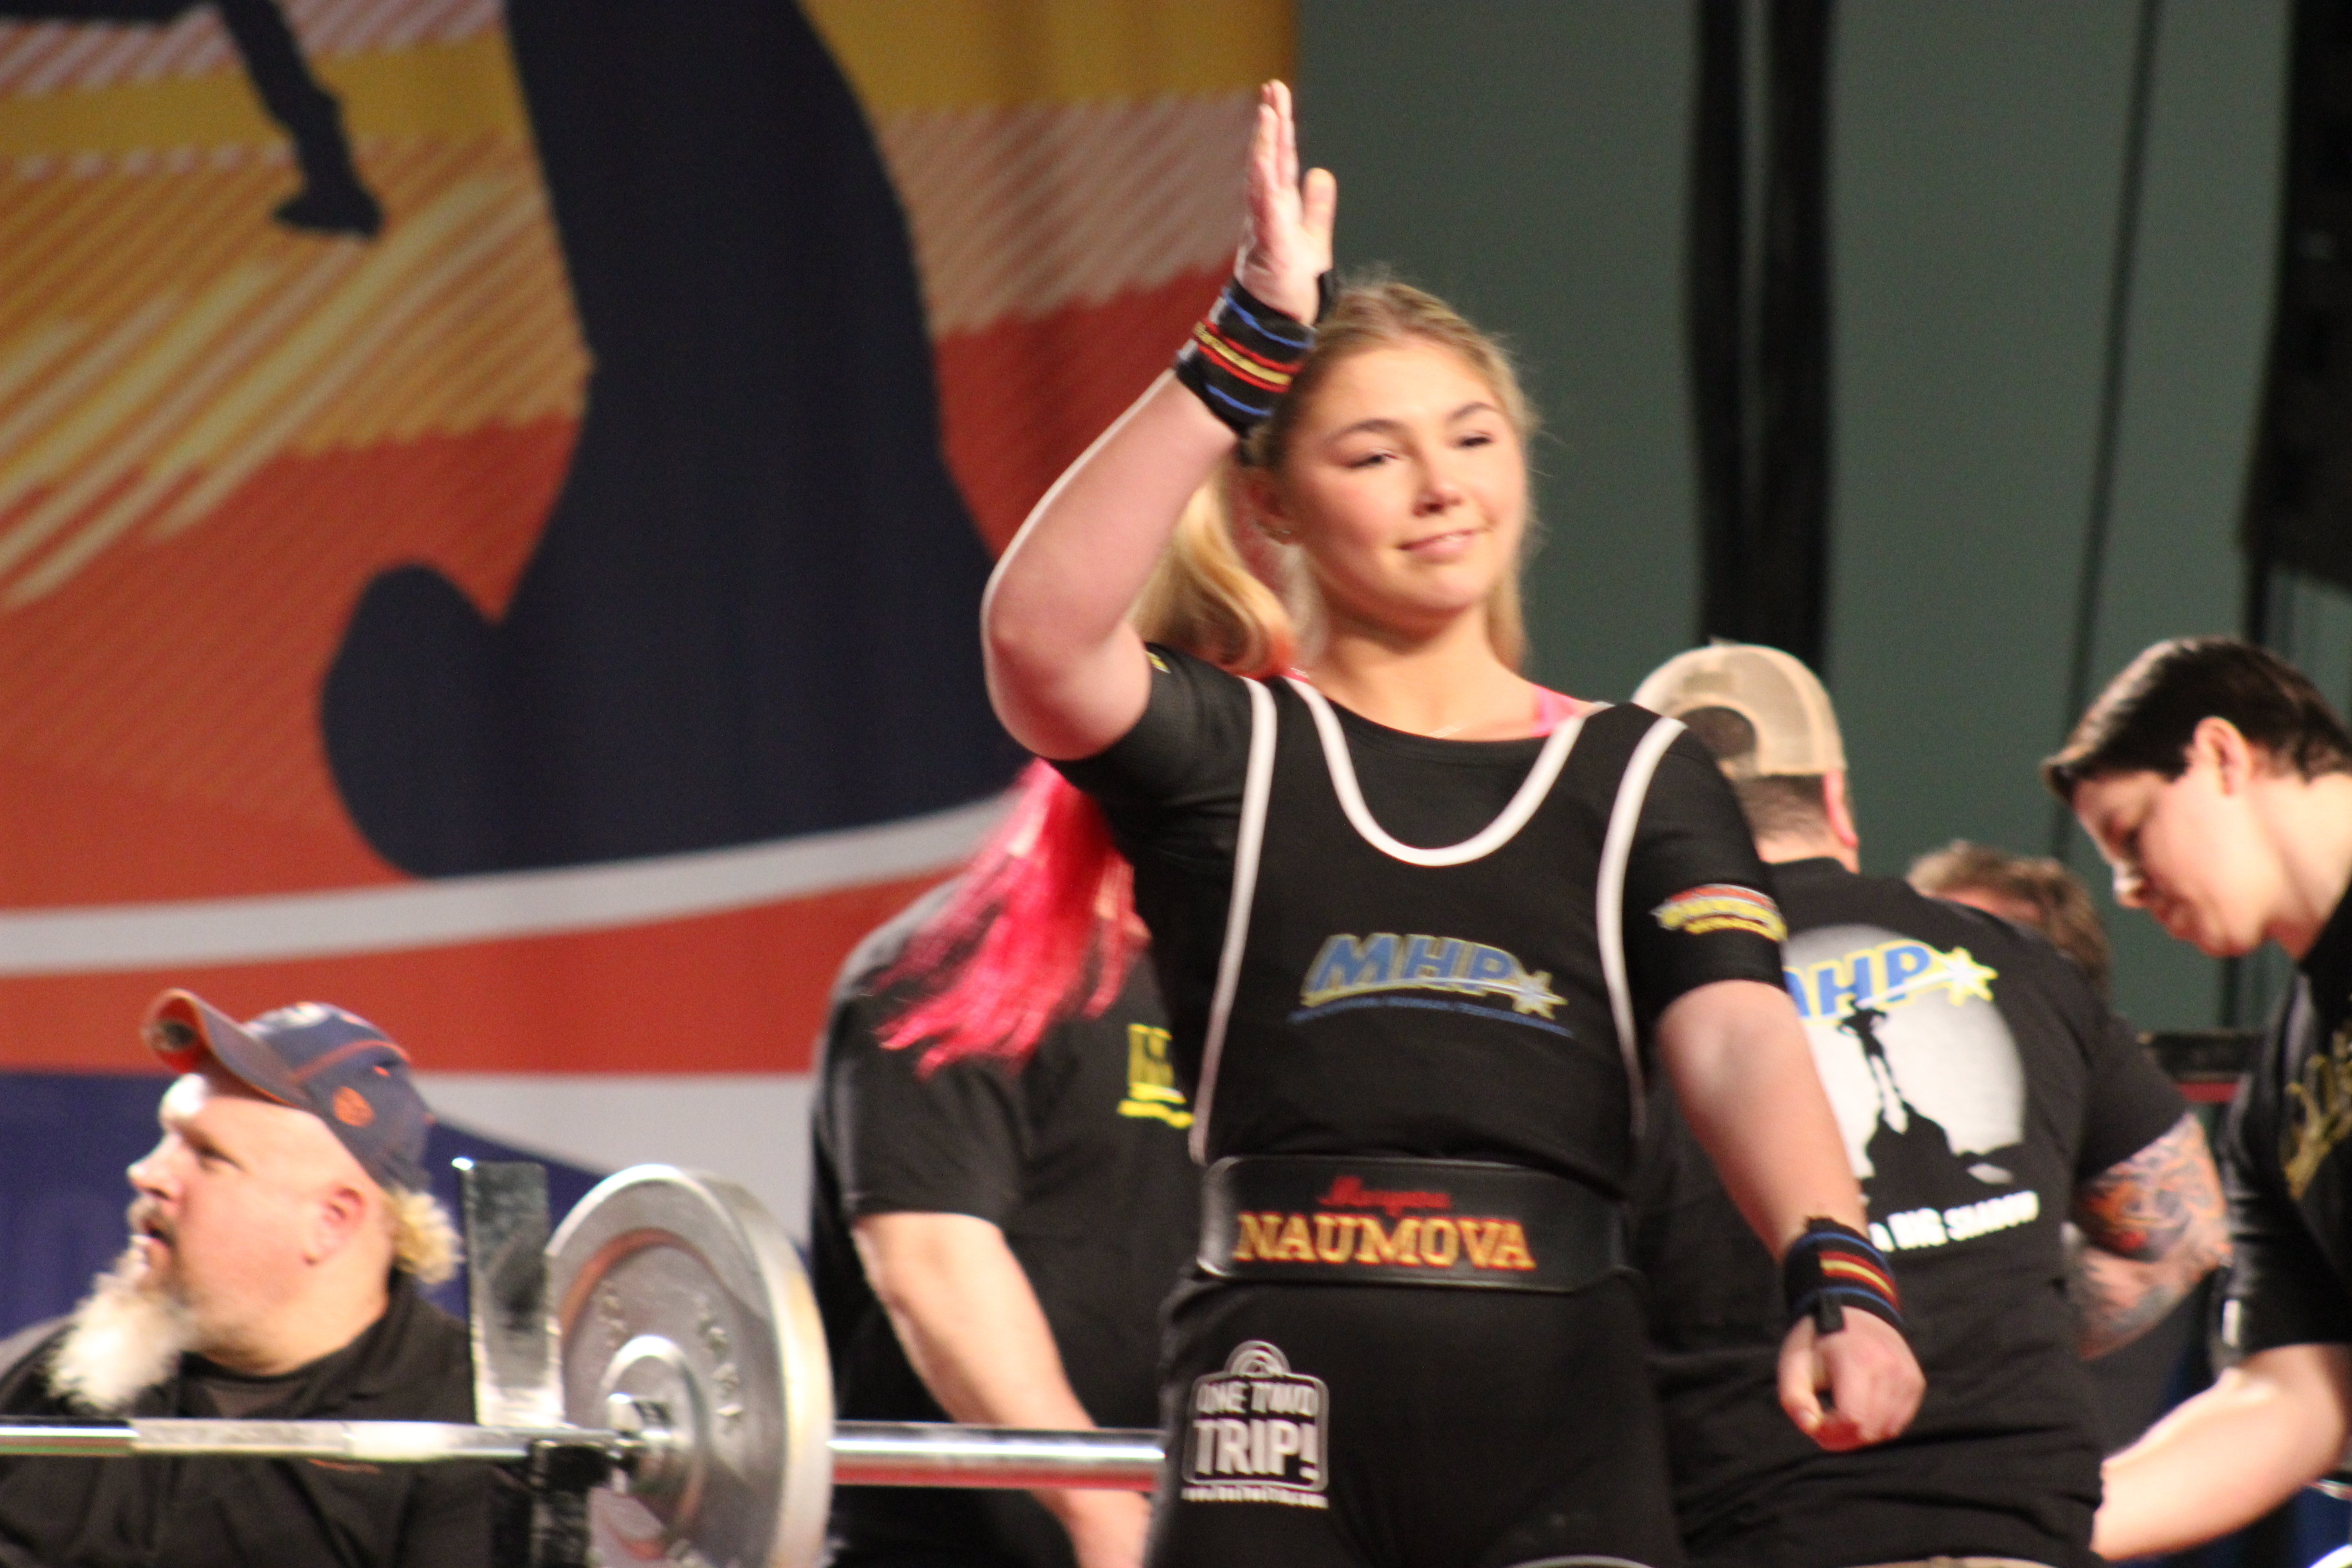 Wo womens bench press records by weight class - At 14 Years Old She Is 5 7 And Weighs 136lbs